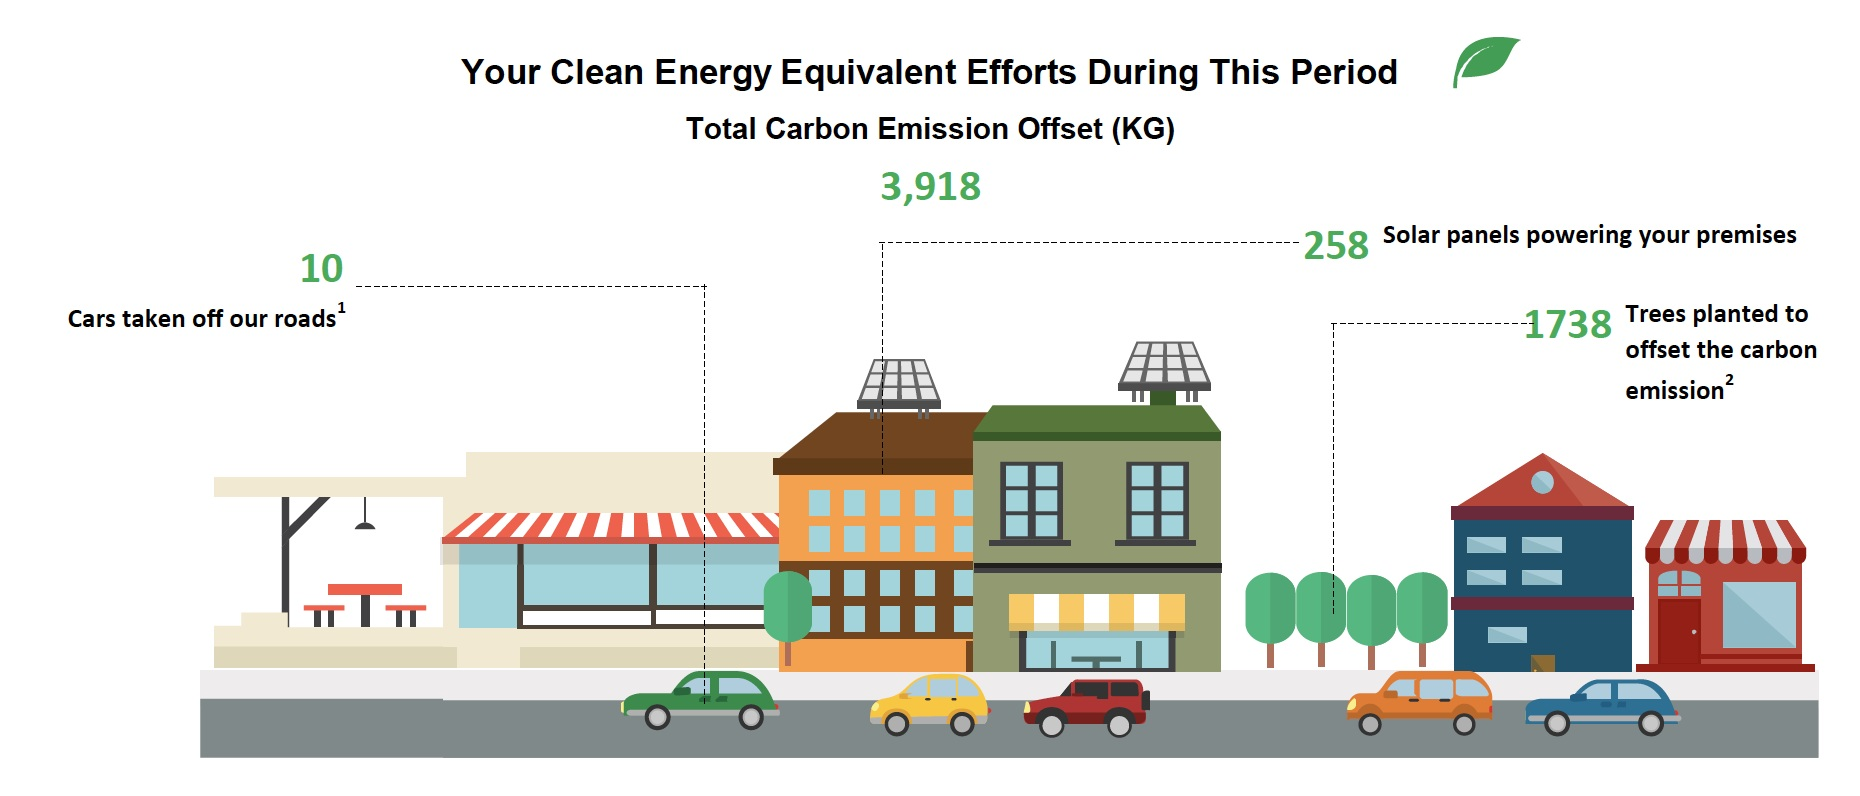 1 Data from number of cars are based on average distance in Singapore from LTA and https://www.epa.gov/energy/greenhouse-gas-equivalencies-calculator  2 Data from number of trees are from: http://www.earthruns.org/index.php/learn/learn